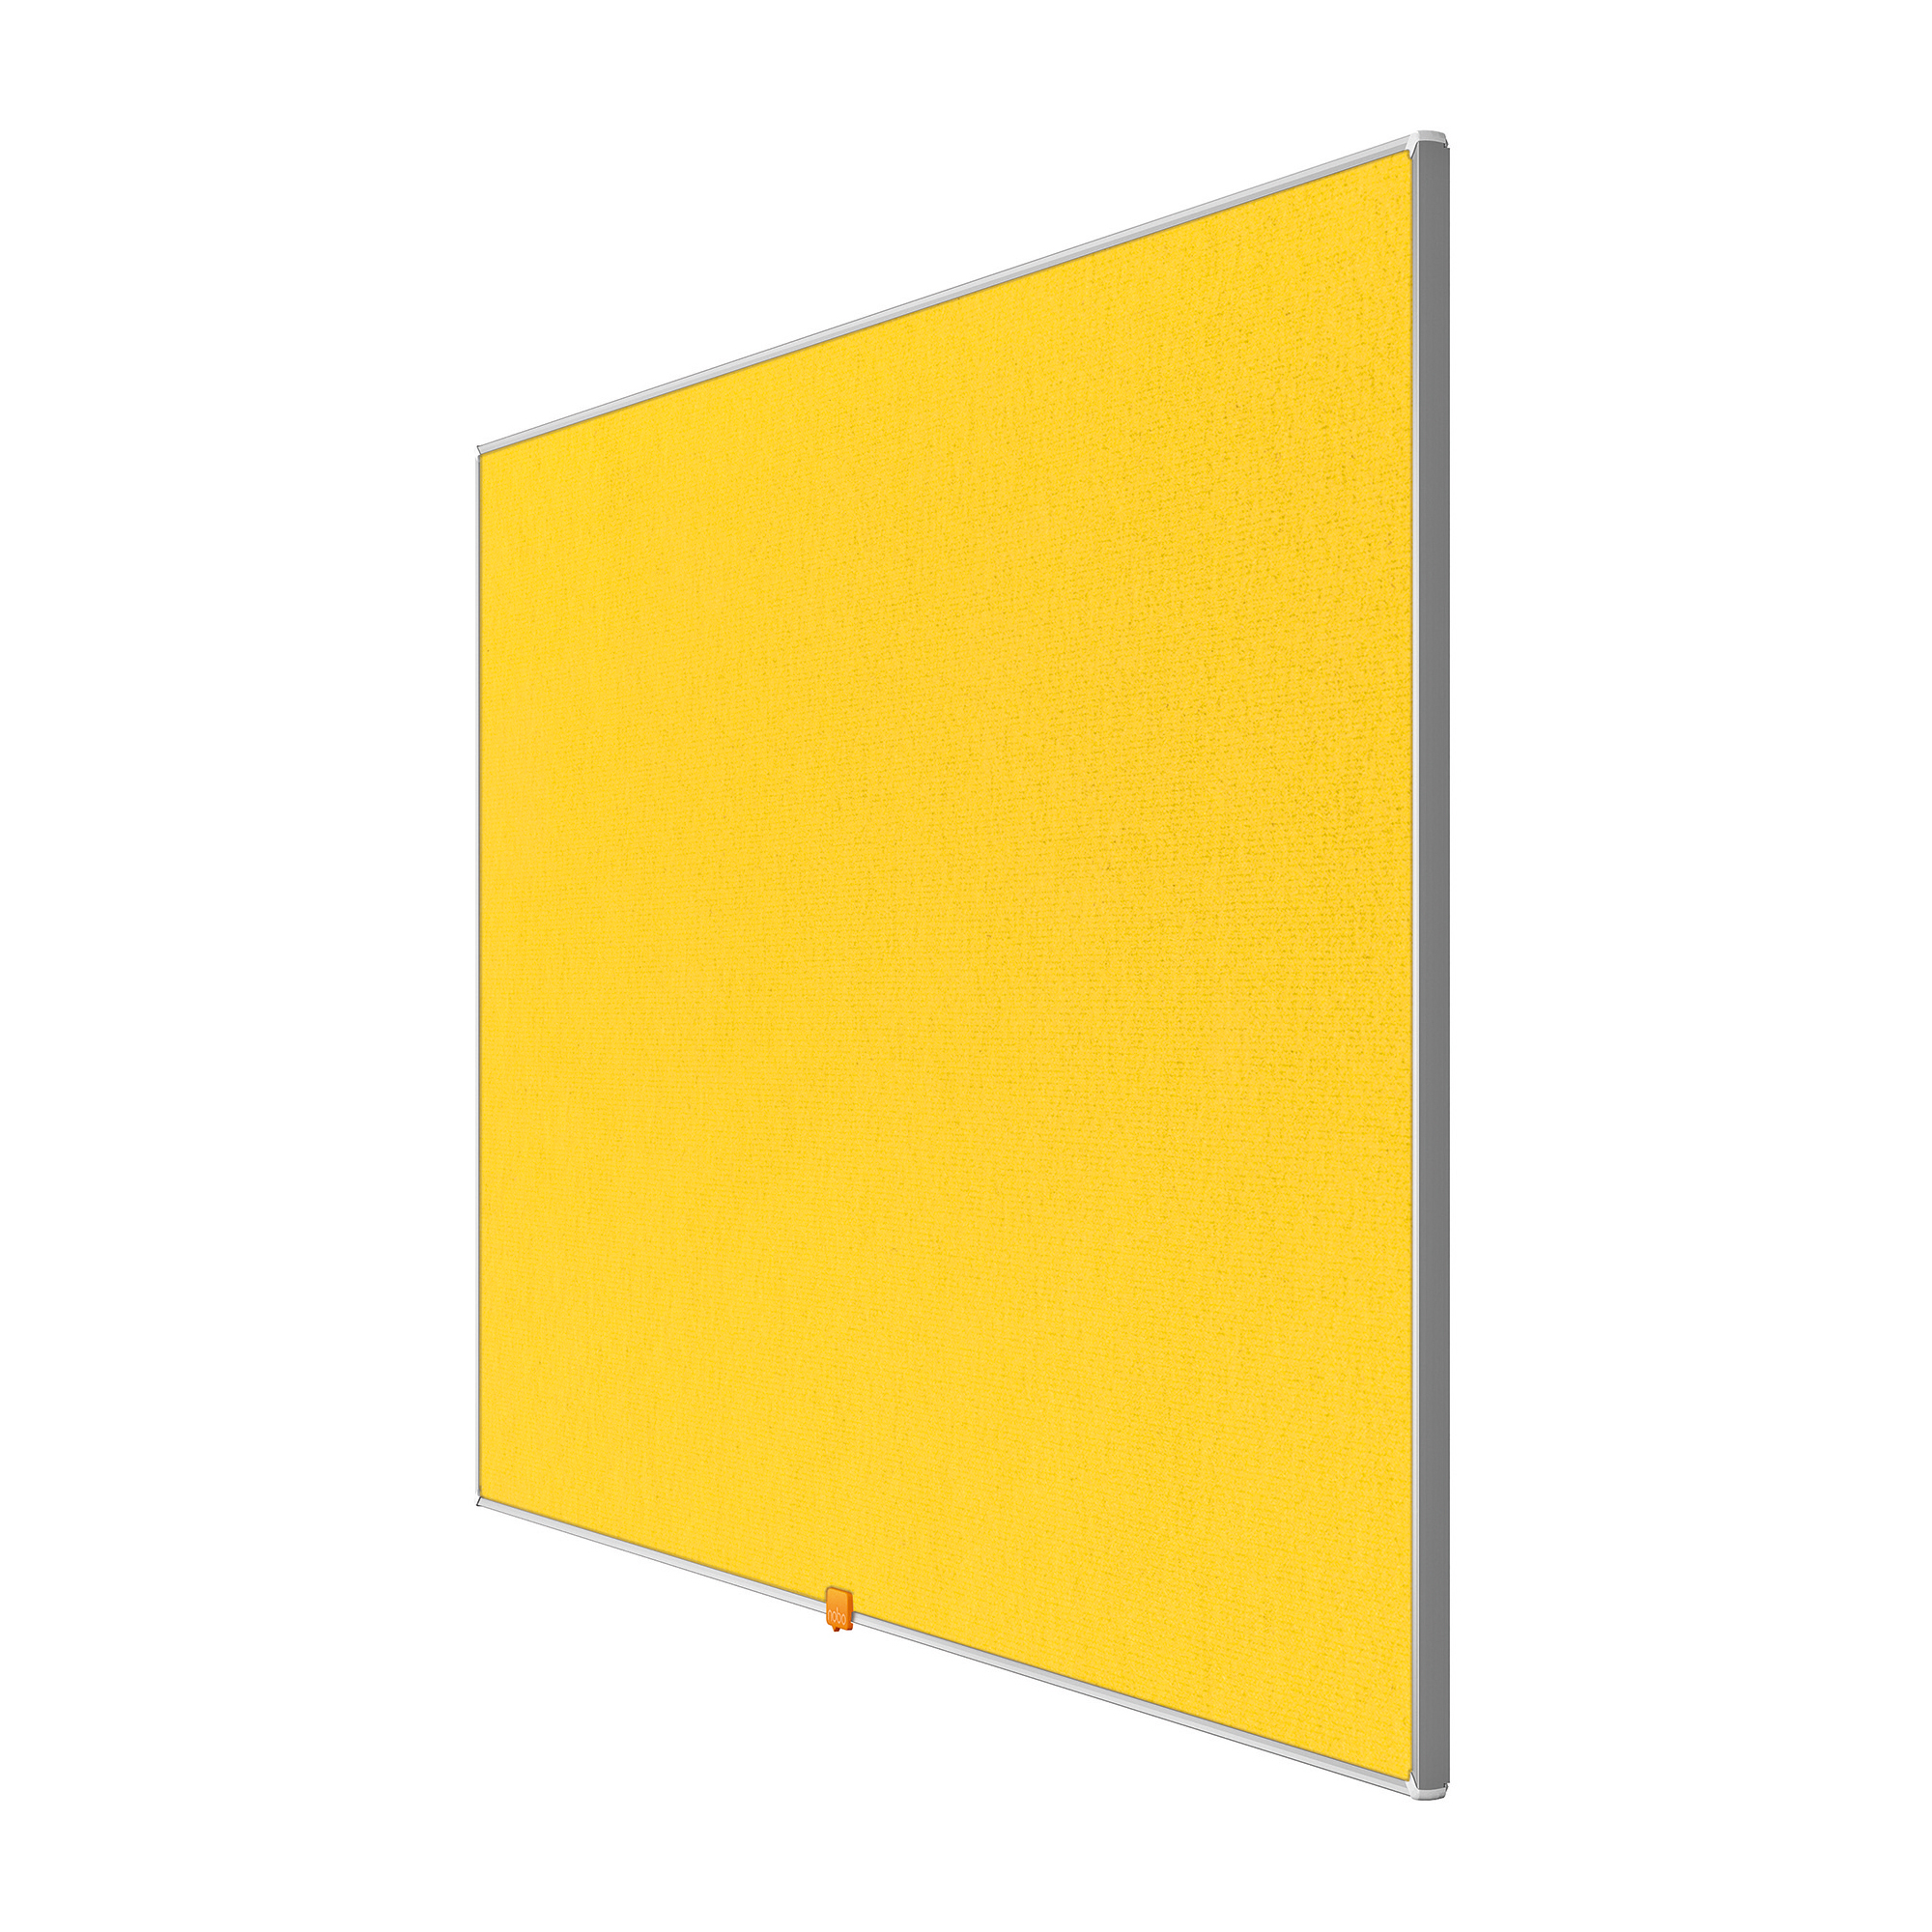 Bulletin boards or accessories Nobo 32 inch Widescreen Felt Board 710x400mm Yellow Ref 1905318